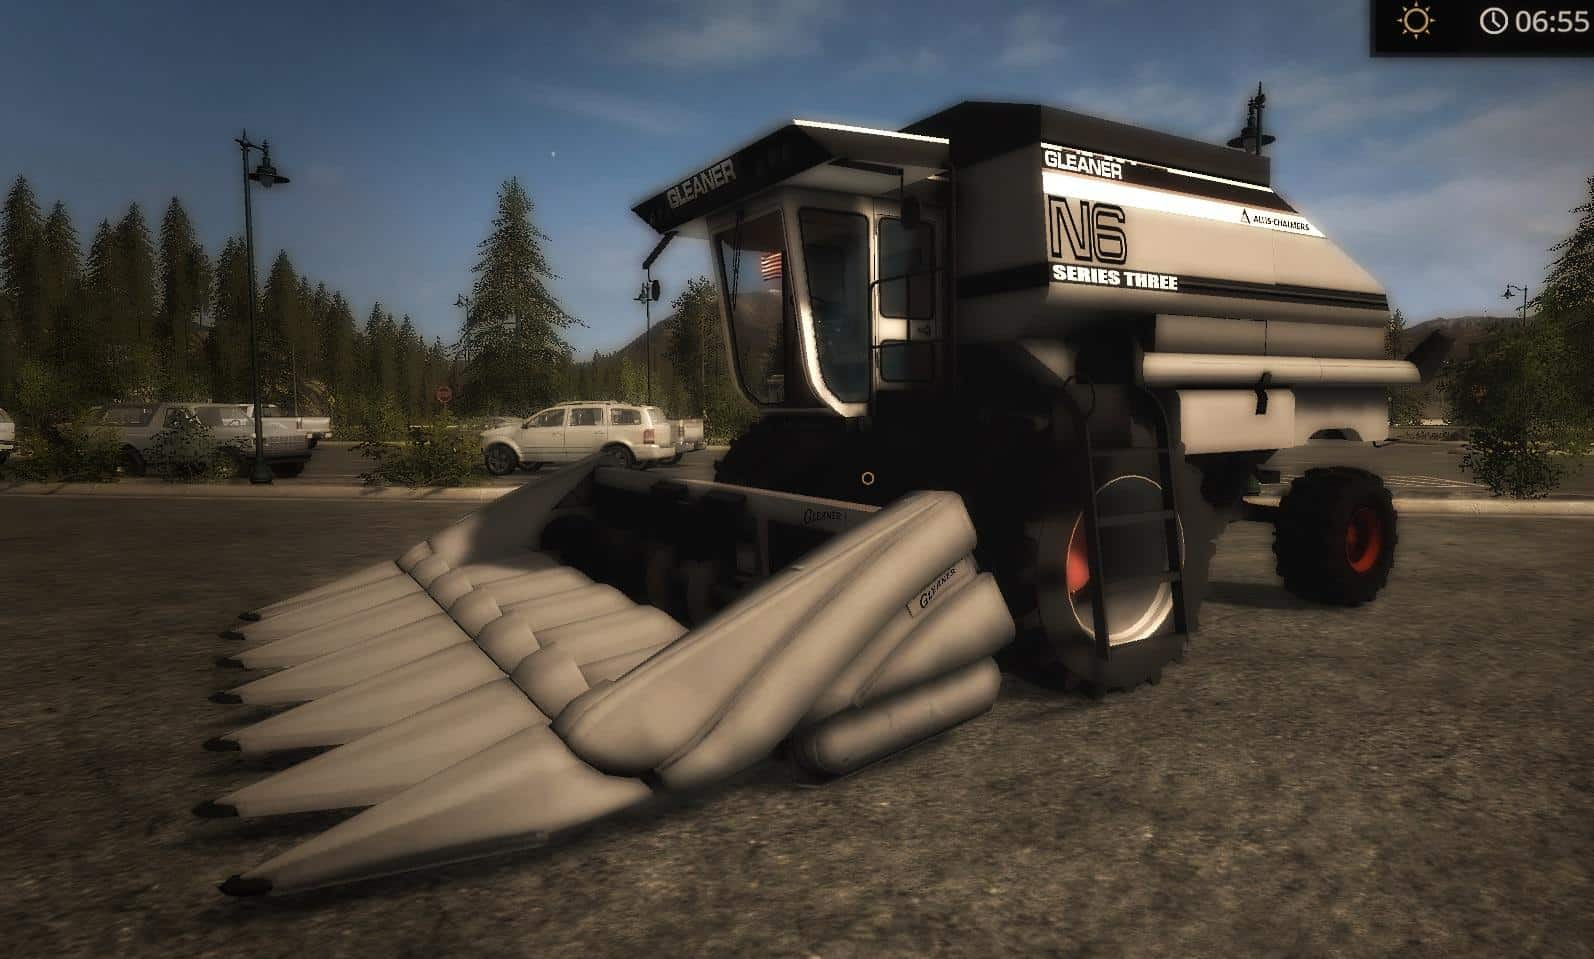 OLD IRON Gleaner N6 and N7 Combine v1.0